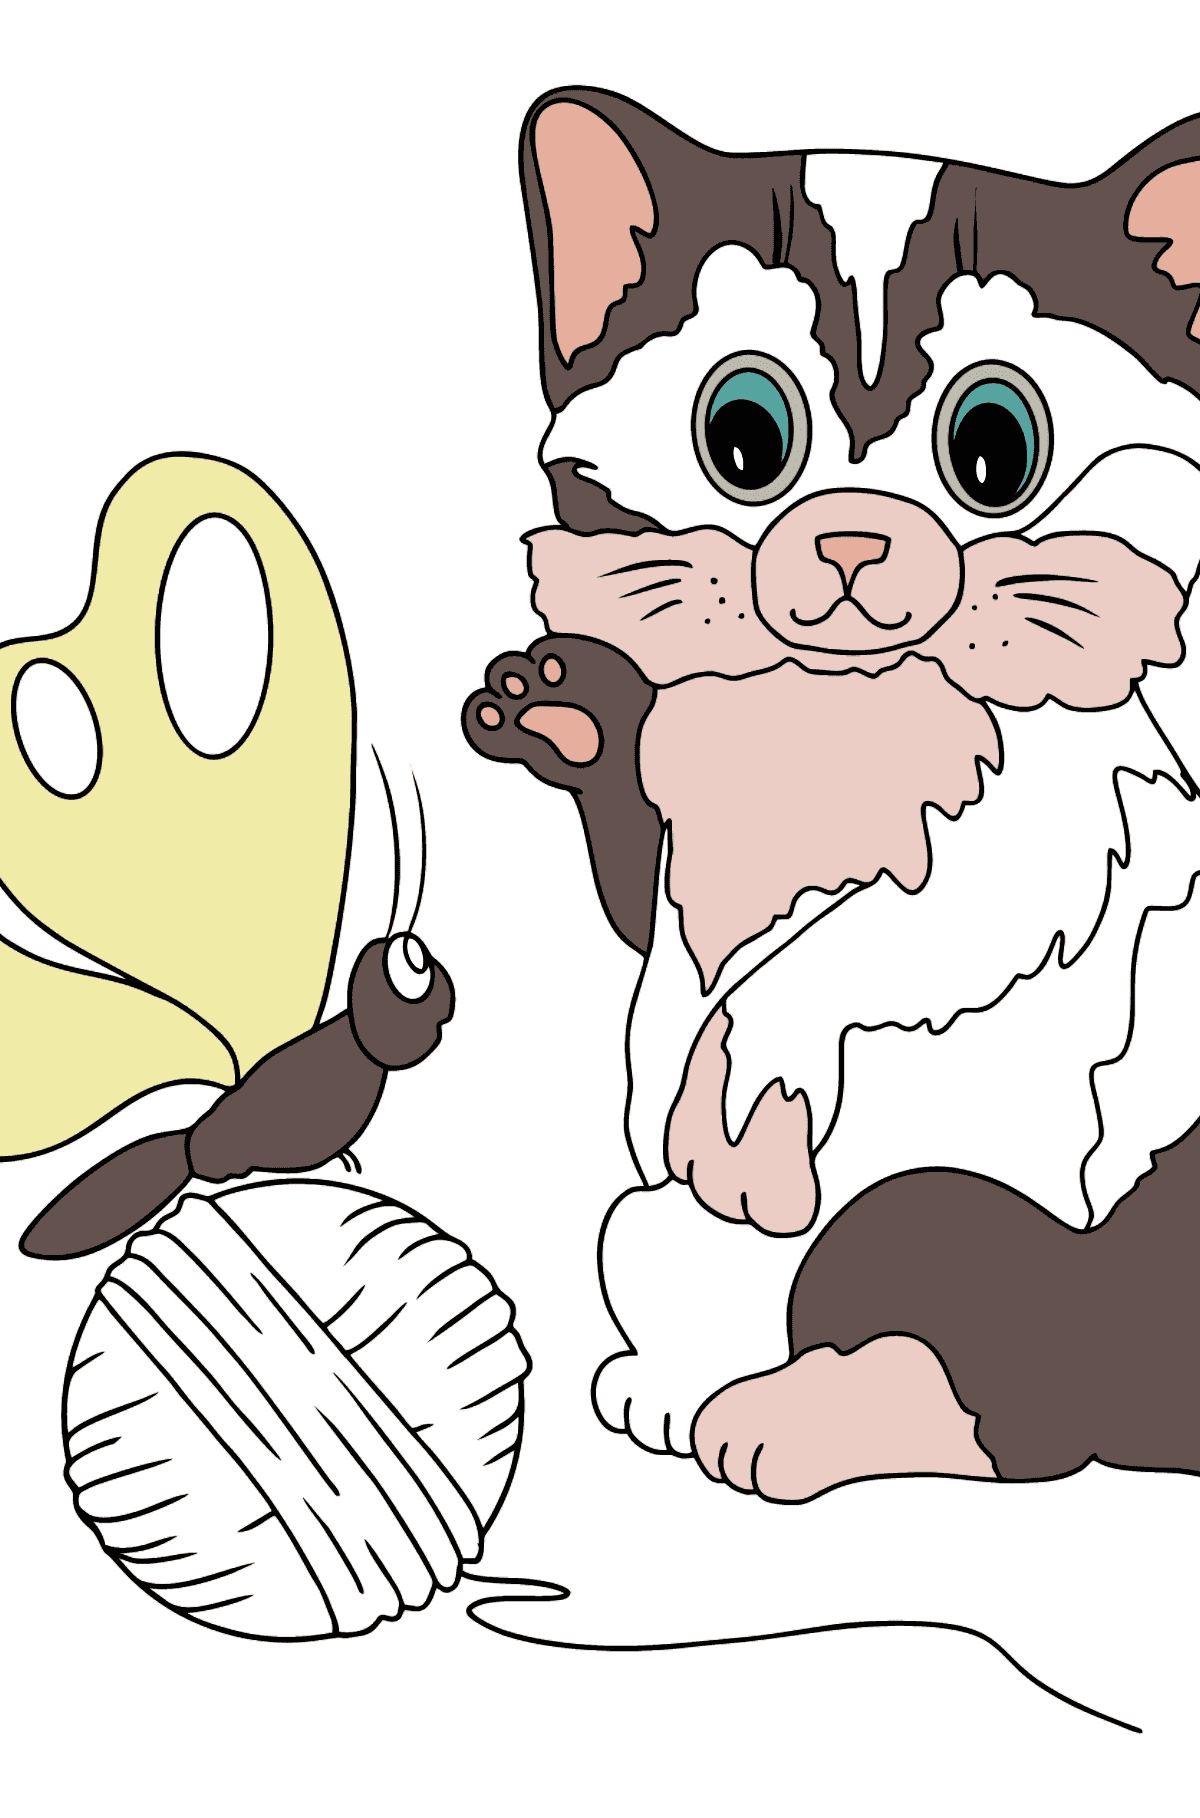 Coloring Page - A Kitten is Trying to Catch a Butterfly - Coloring Pages for Kids